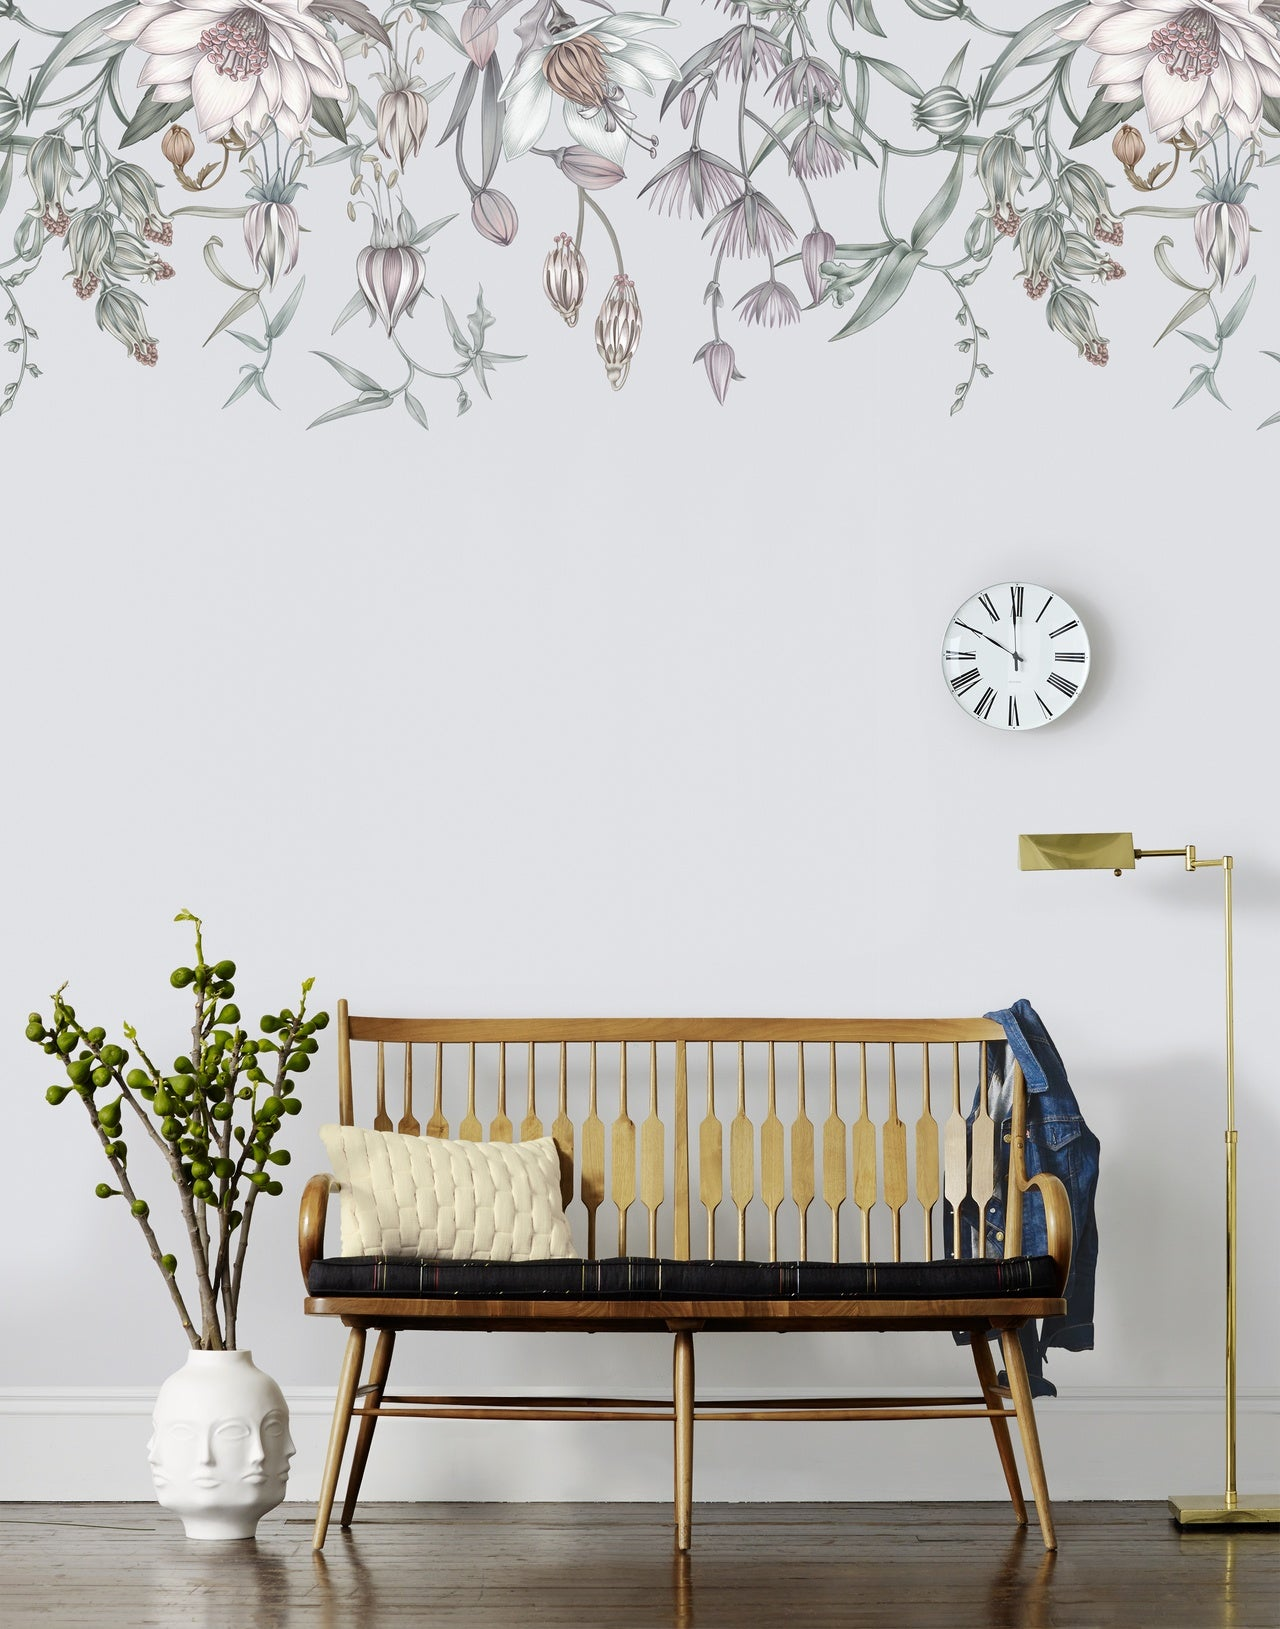 Canopy Cloud Gray mural | Lisel Jane Ashlock collection | modern floral wallpapers and murals | Hygge & West